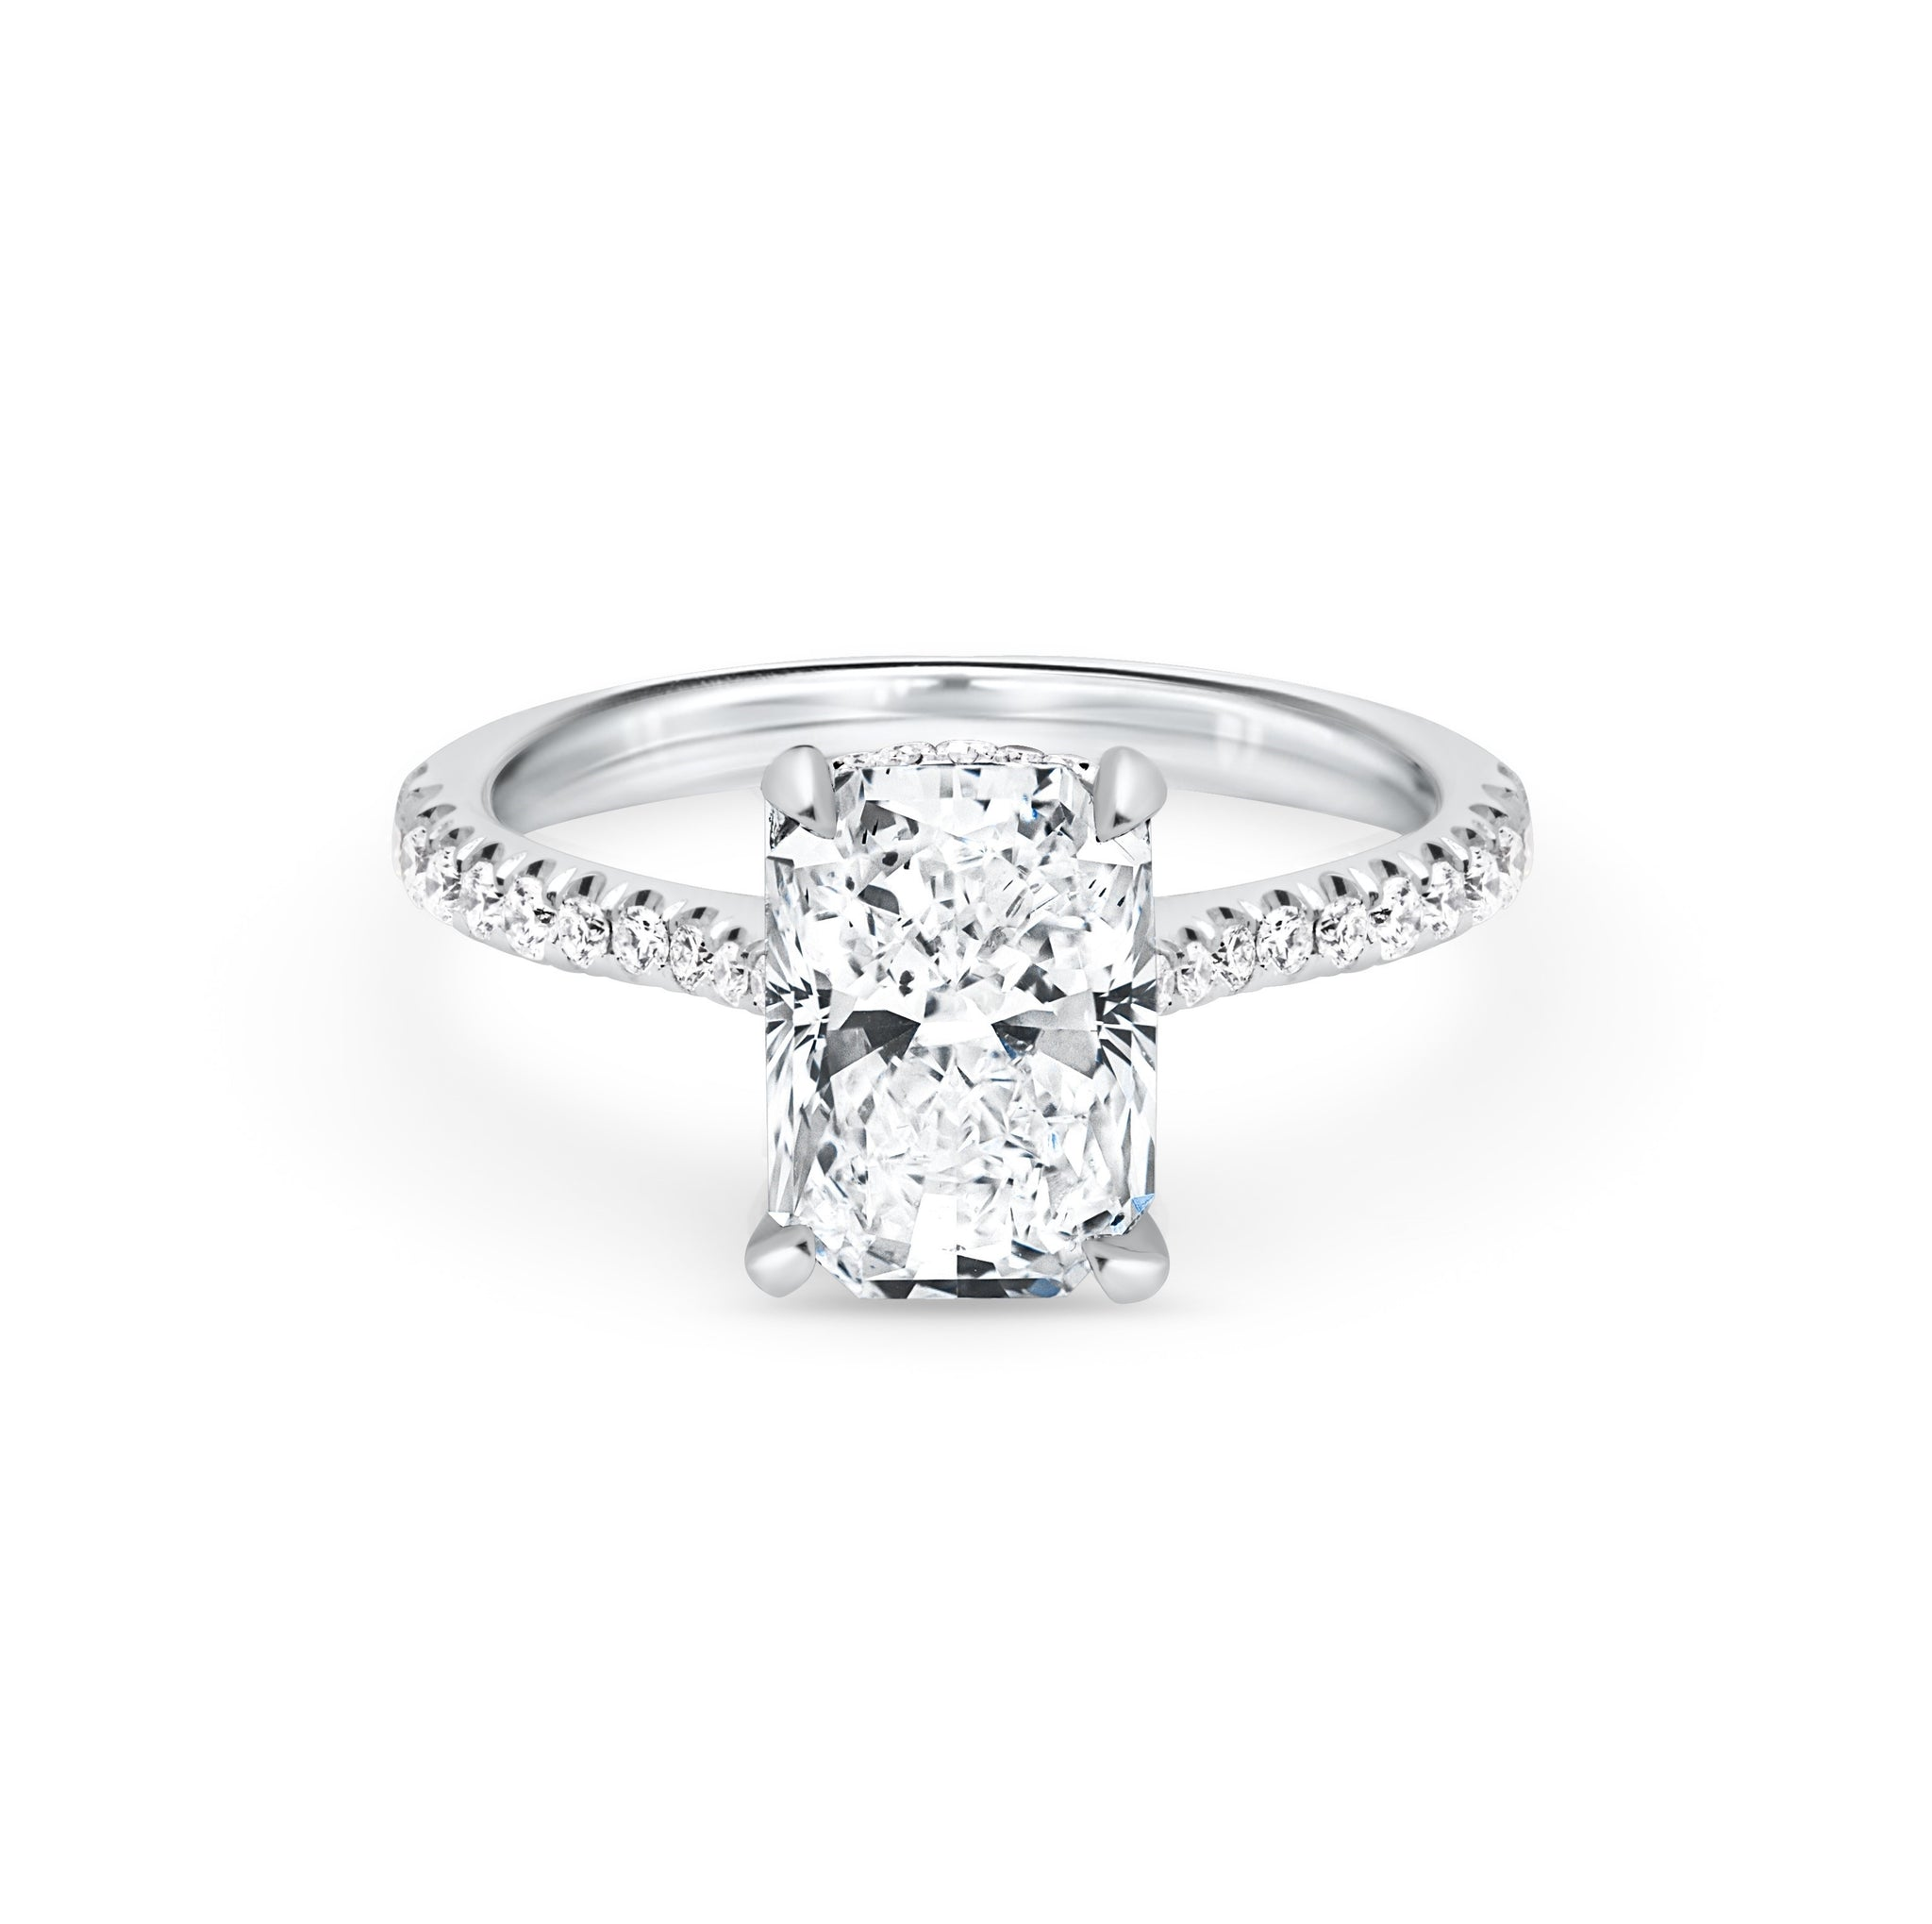 Radiant Cut Diamond Engagement Ring with Pavé 3.88ctw